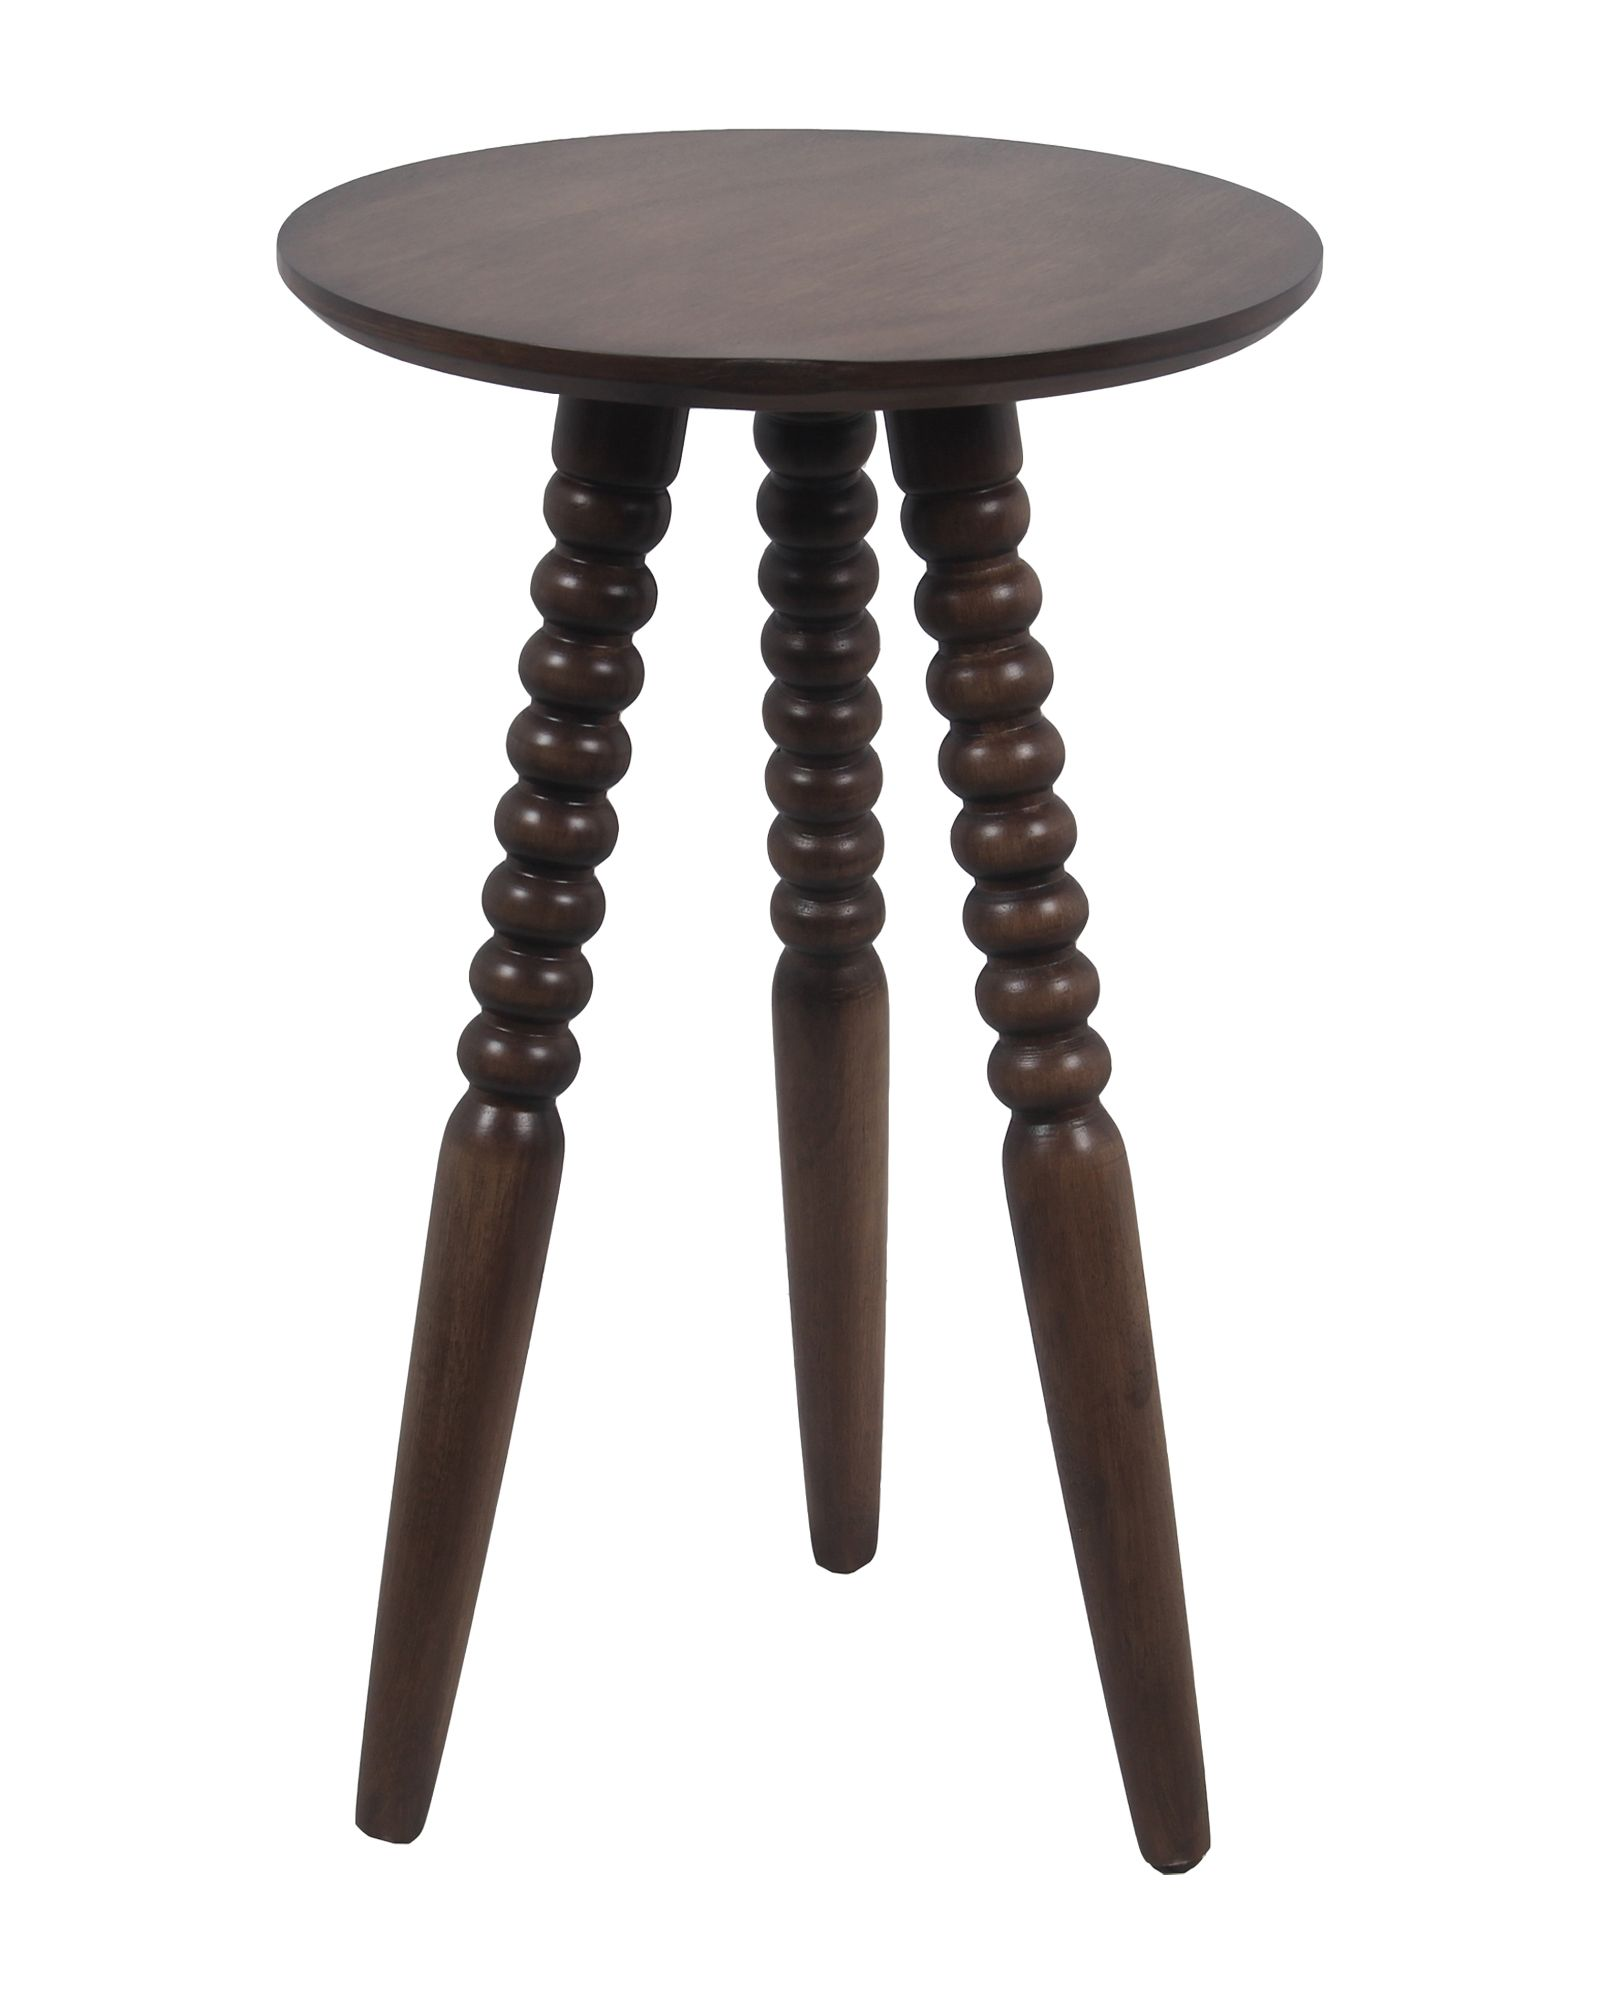 privilege brown round accent table home garden plexiglass gold console butler desk furniture slipper chair oval farmhouse dining coffee tray target lamps plus lynnwood long